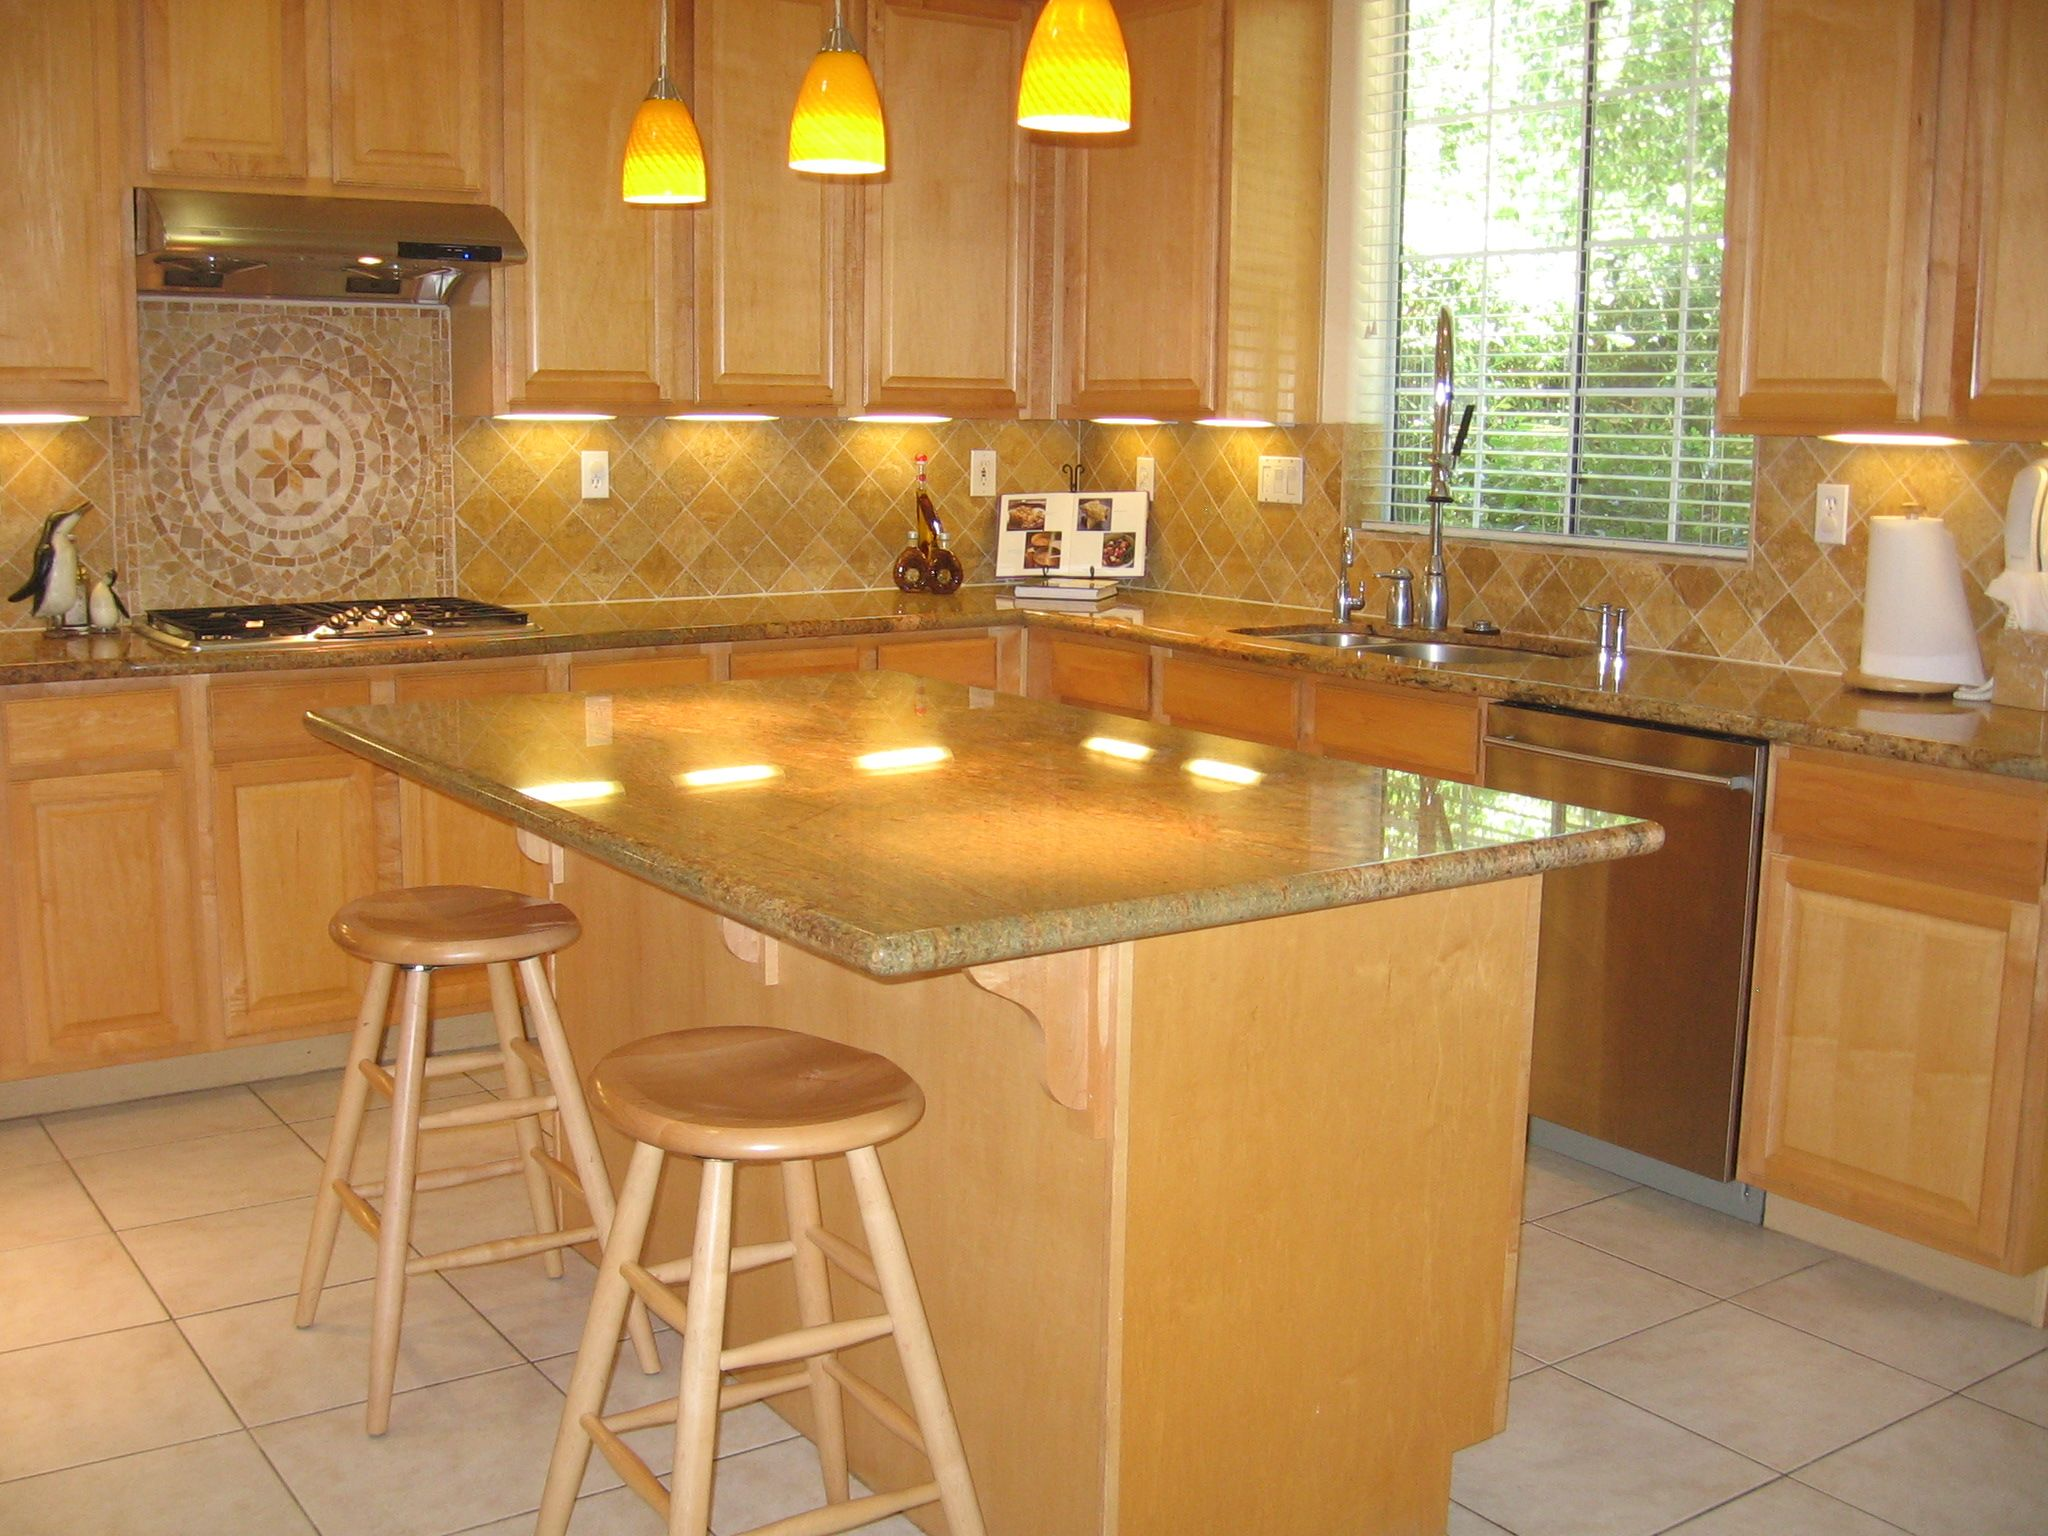 Maple Countertops Kitchen Old Sink With Drainboard Best Backsplashes For Granite Island